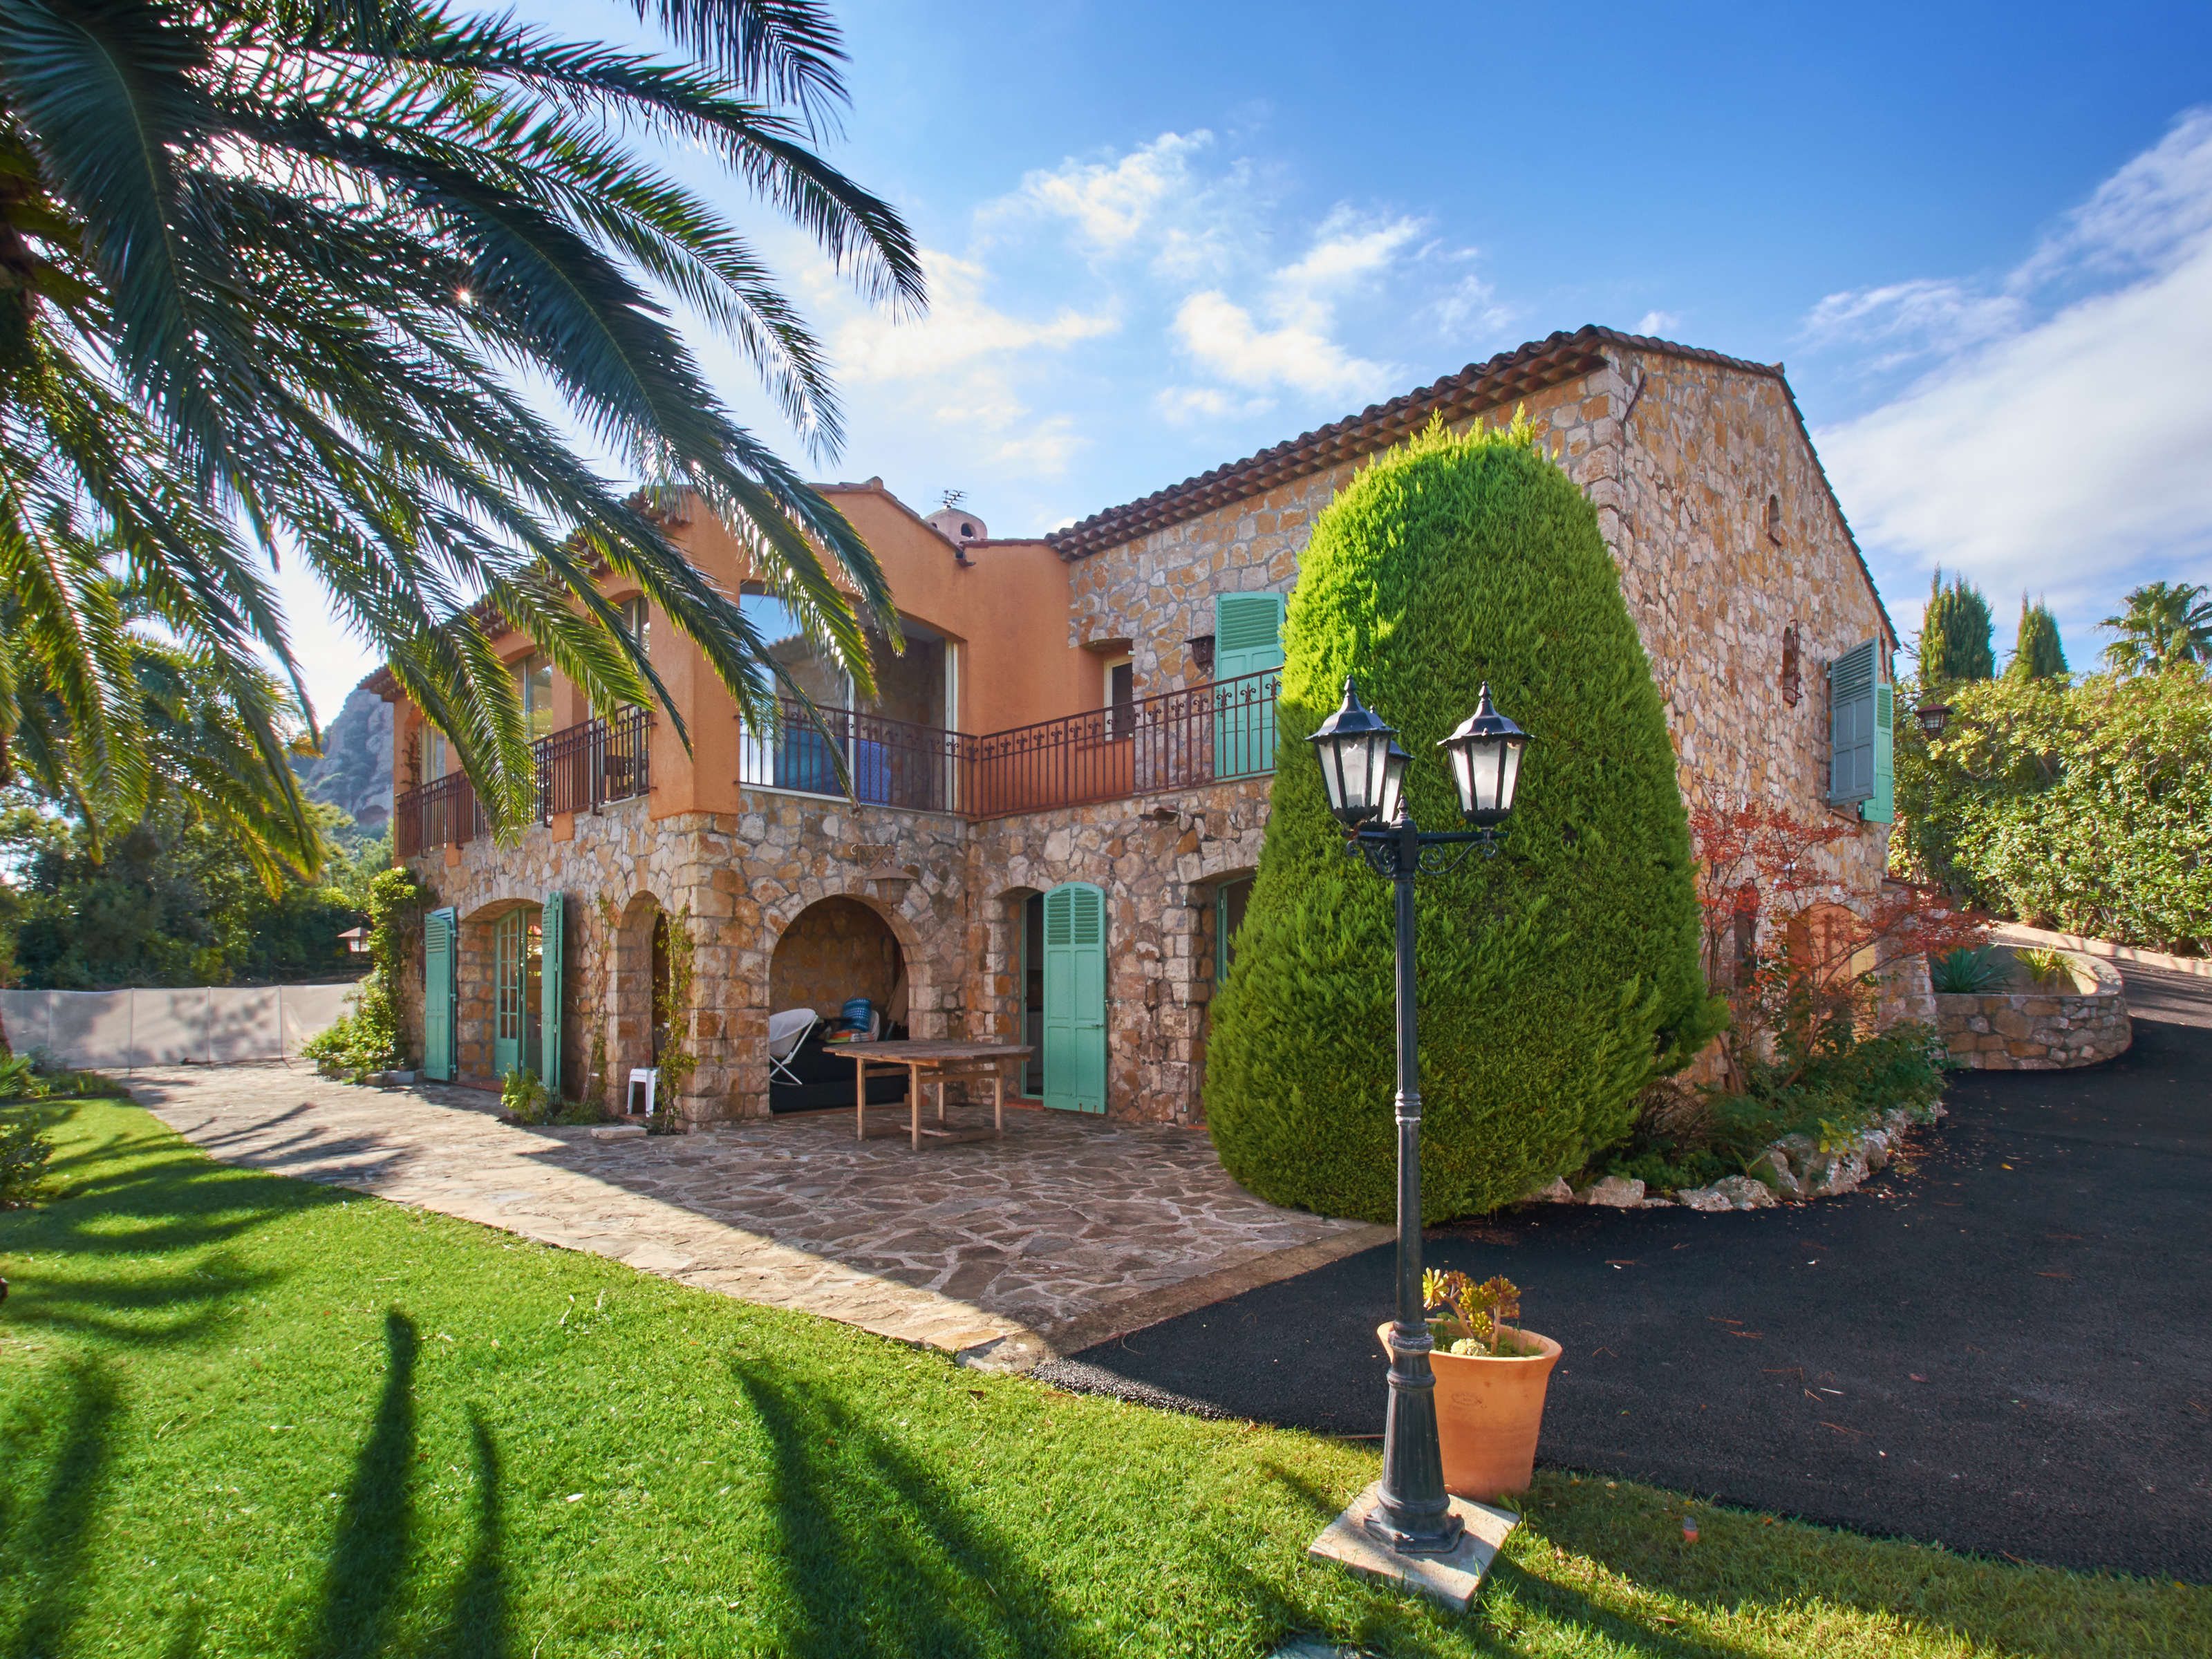 Single Family Home for Sale at Theoule sur Mer Theoule Sur Mer, Provence-Alpes-Cote D'Azur 06590 France